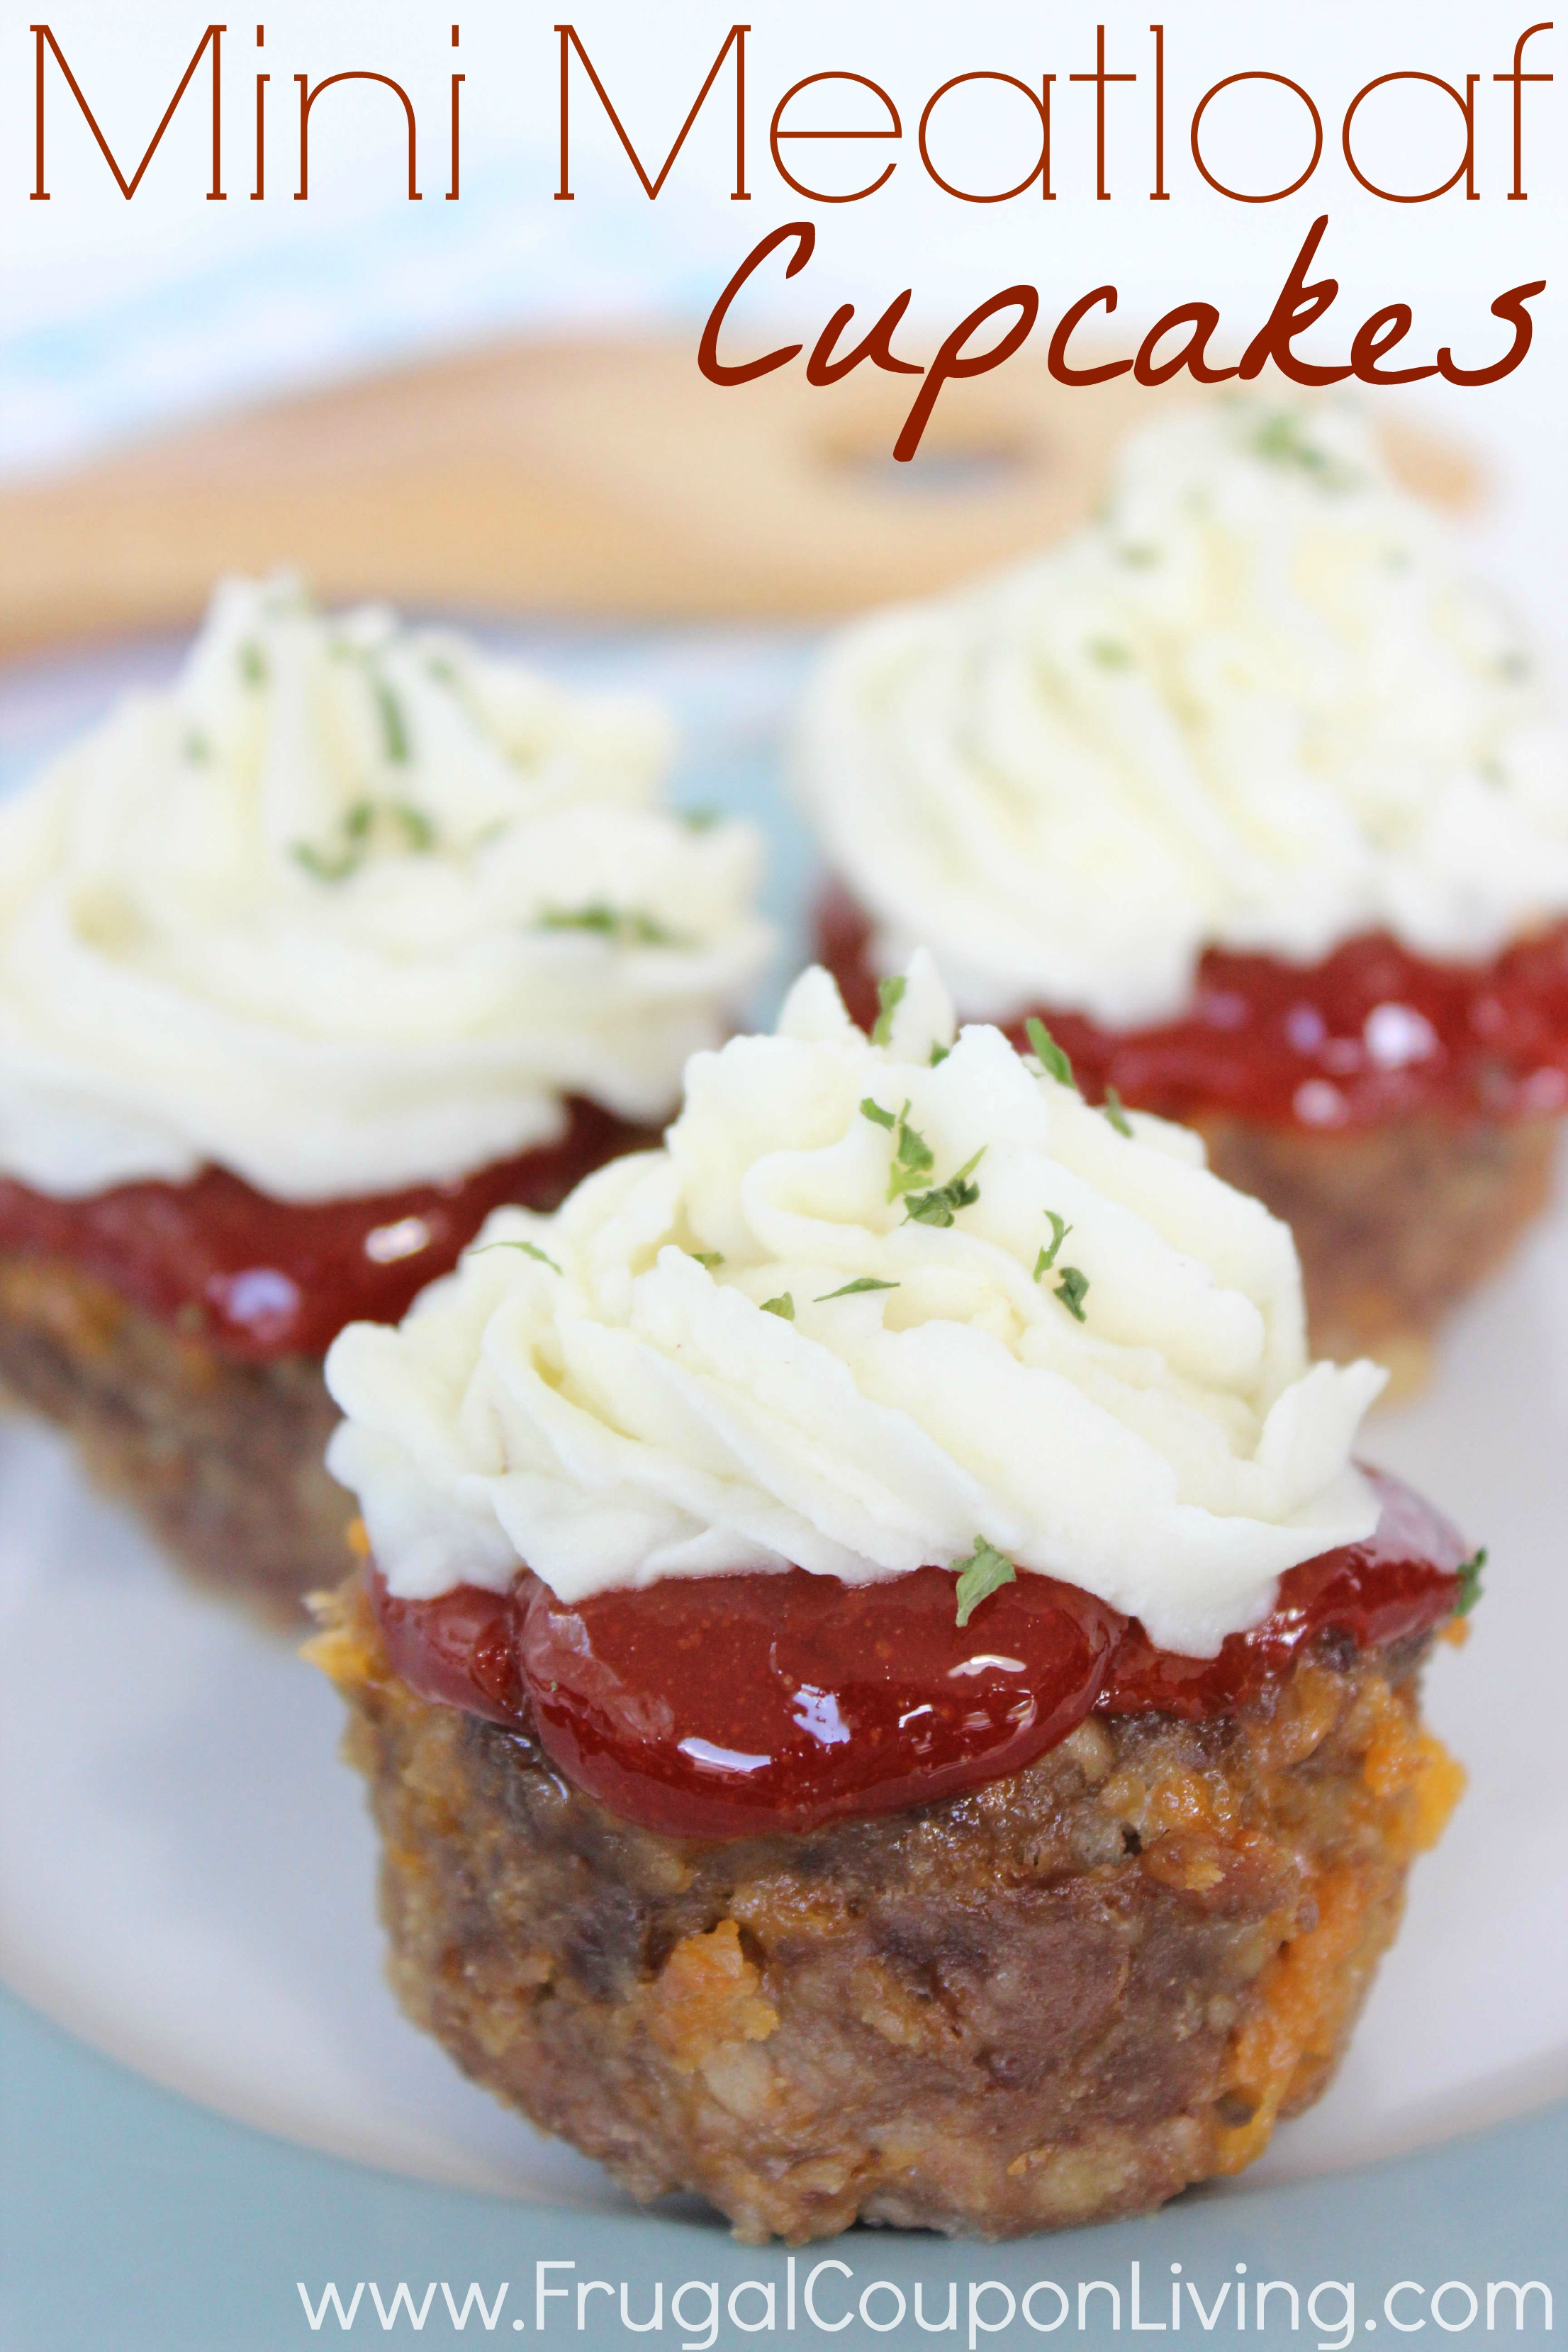 mini-meatloaf-cupcakes-frugal-coupon-living